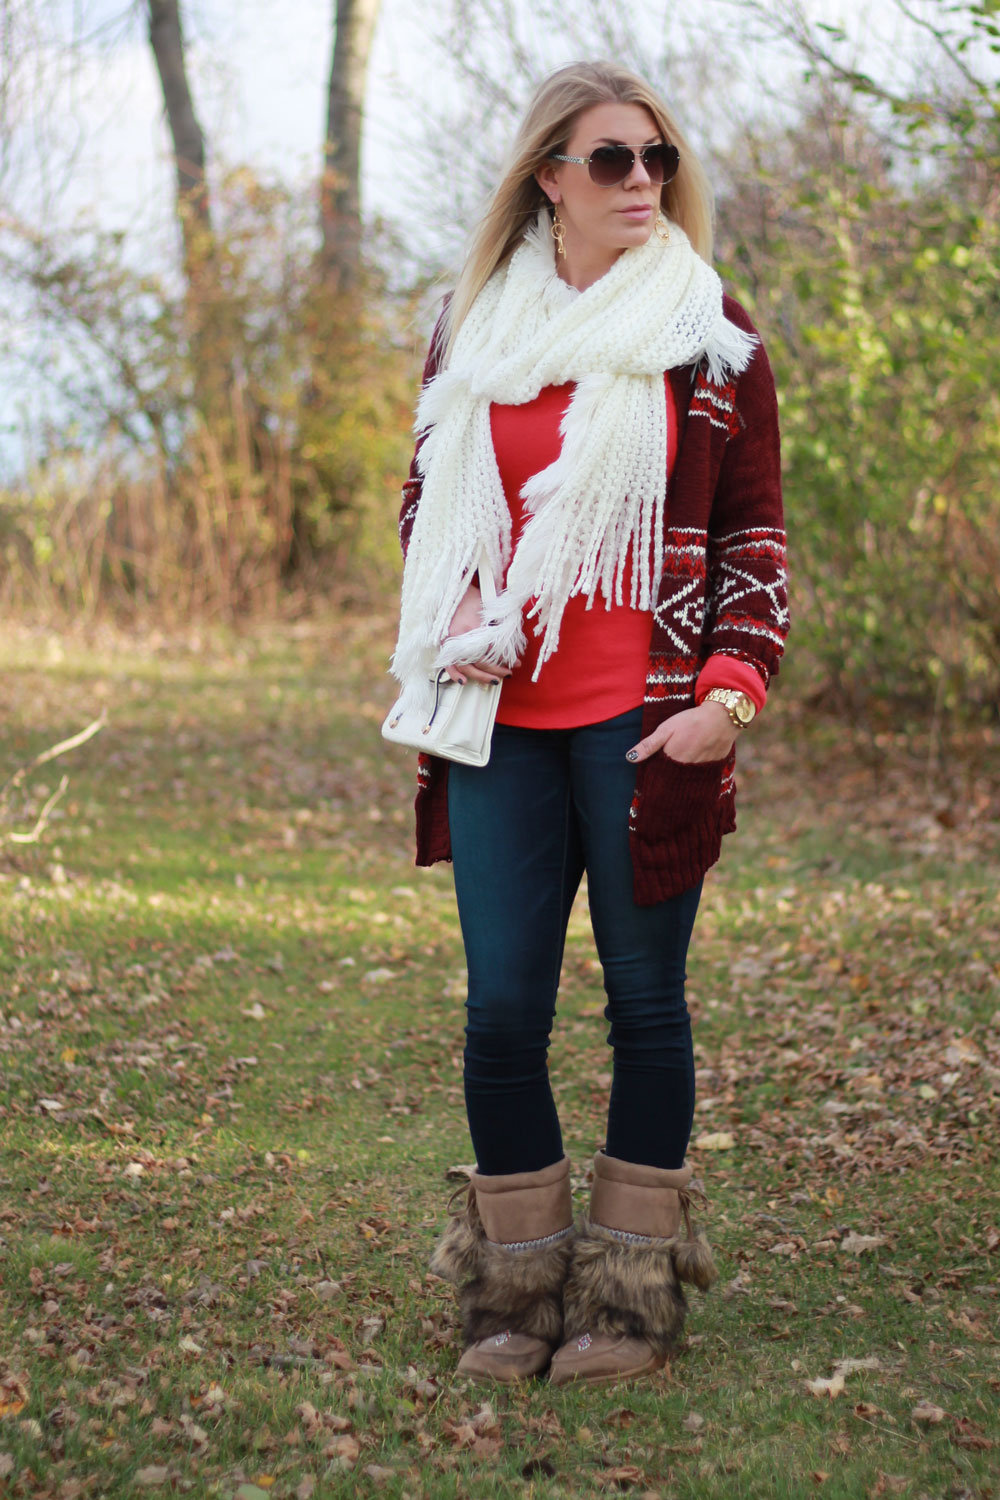 red cardi and fluffy boots